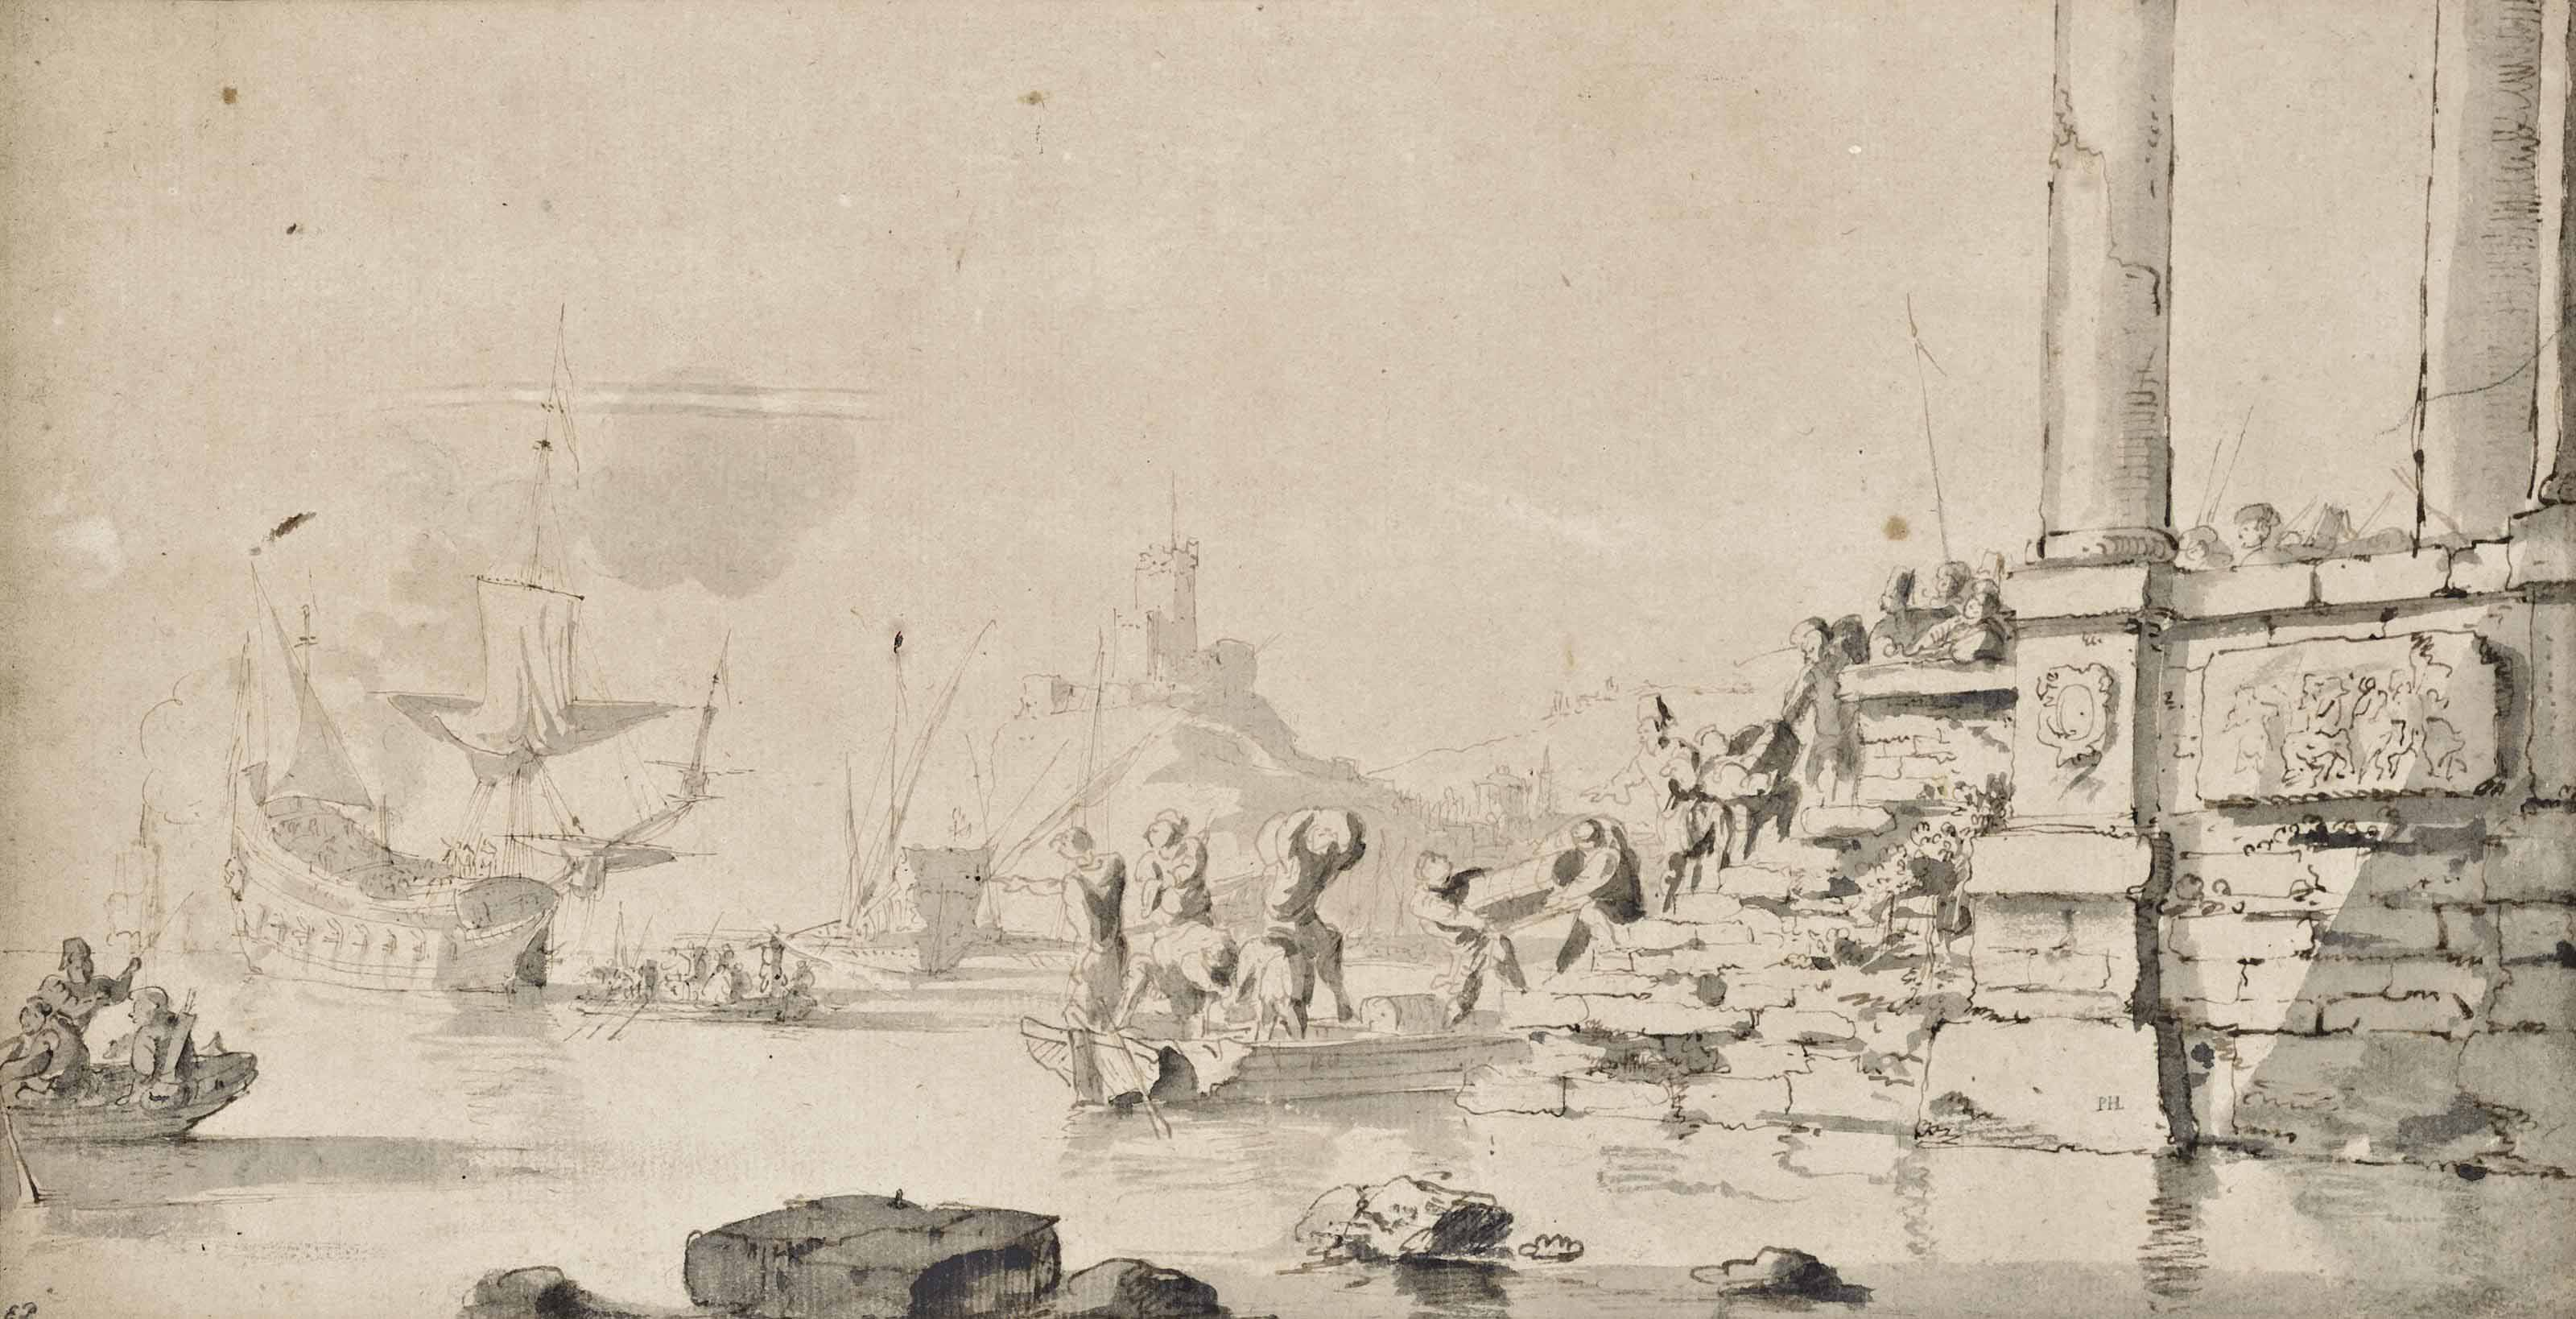 Capriccio landscape with ships in a harbour and figures unloading boats from a quay